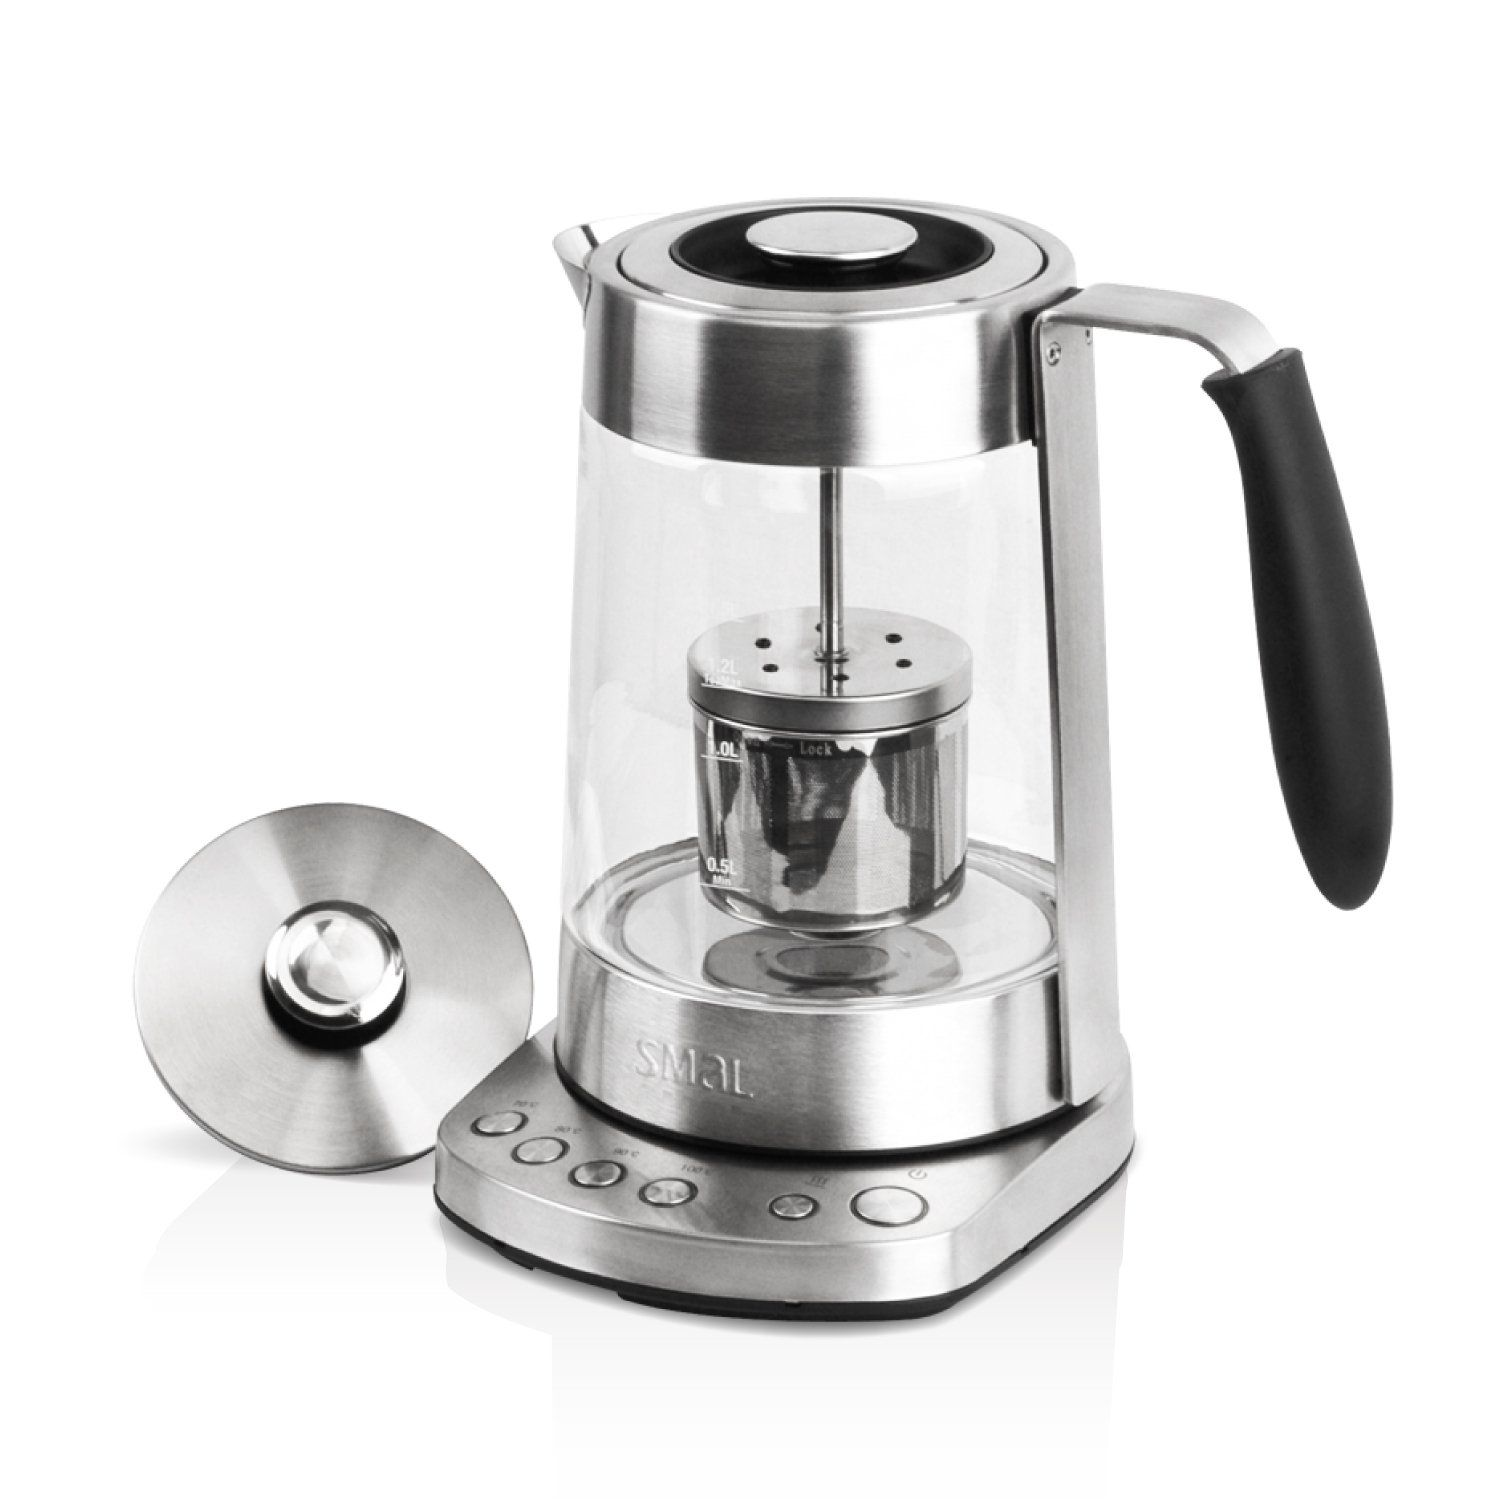 Global Coffee and Tea Maker Combo Market 2020 – The Daily Chronicle